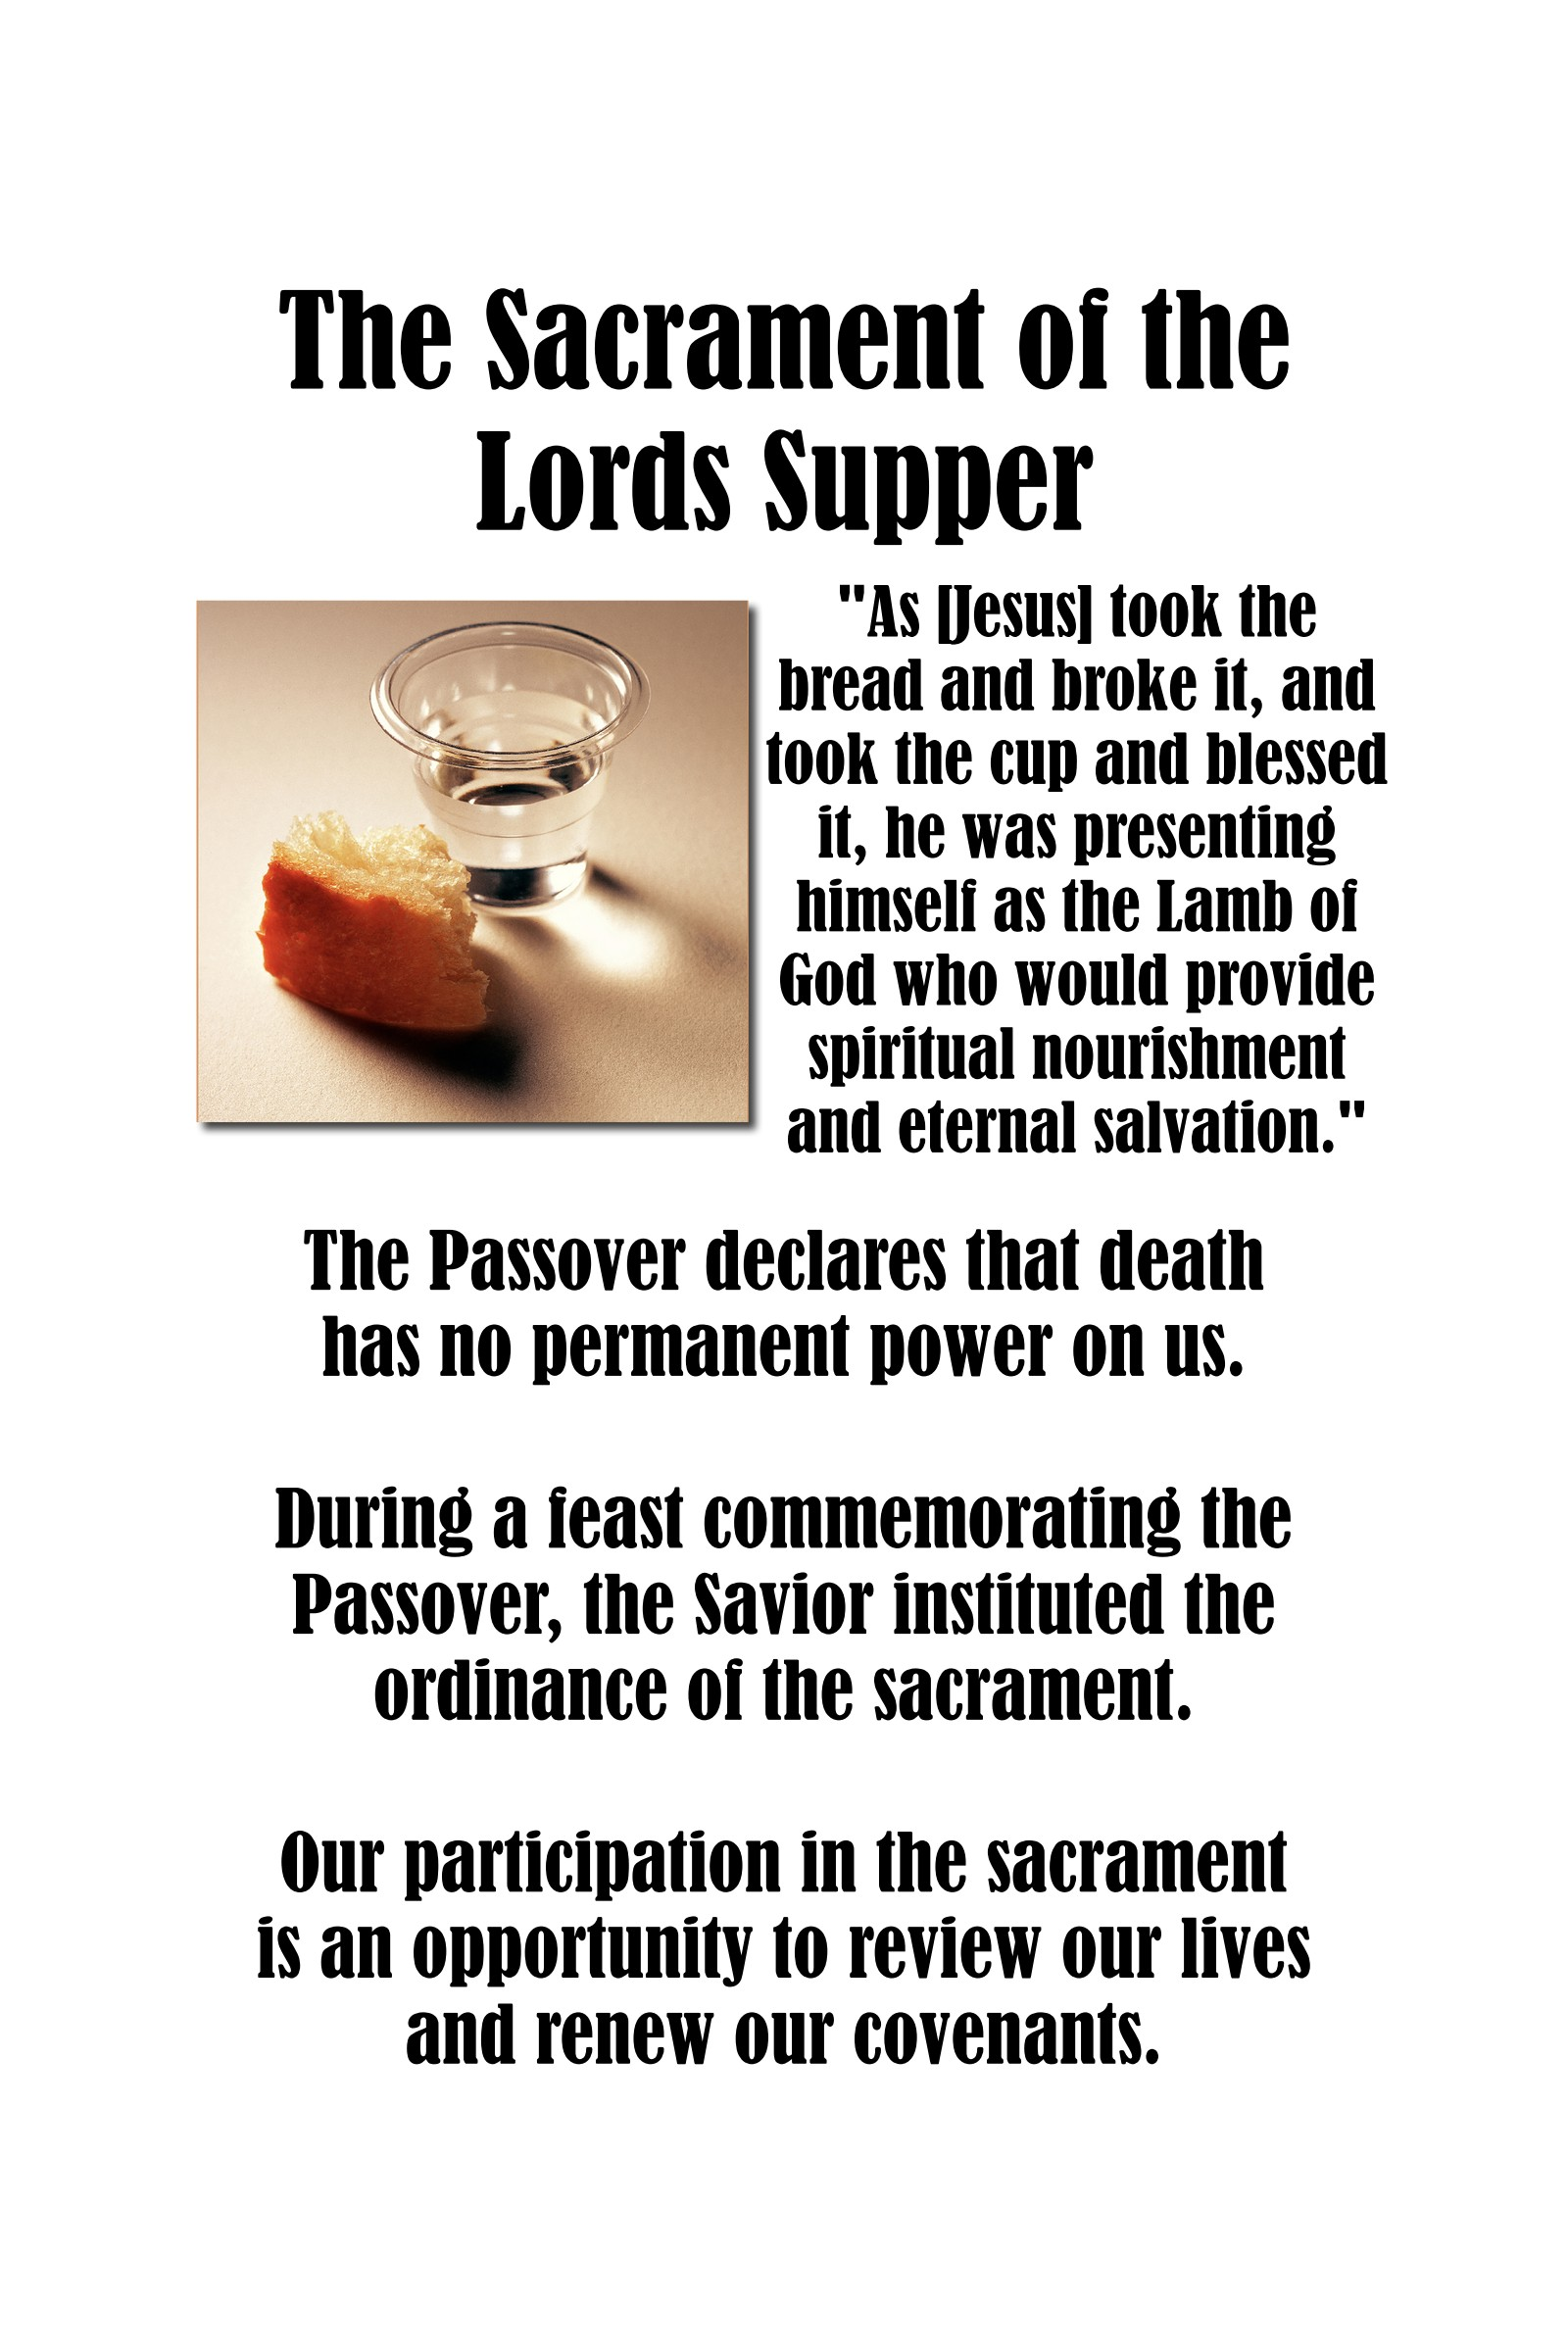 Chapter 15: The Sacrament of the Lord's Supper